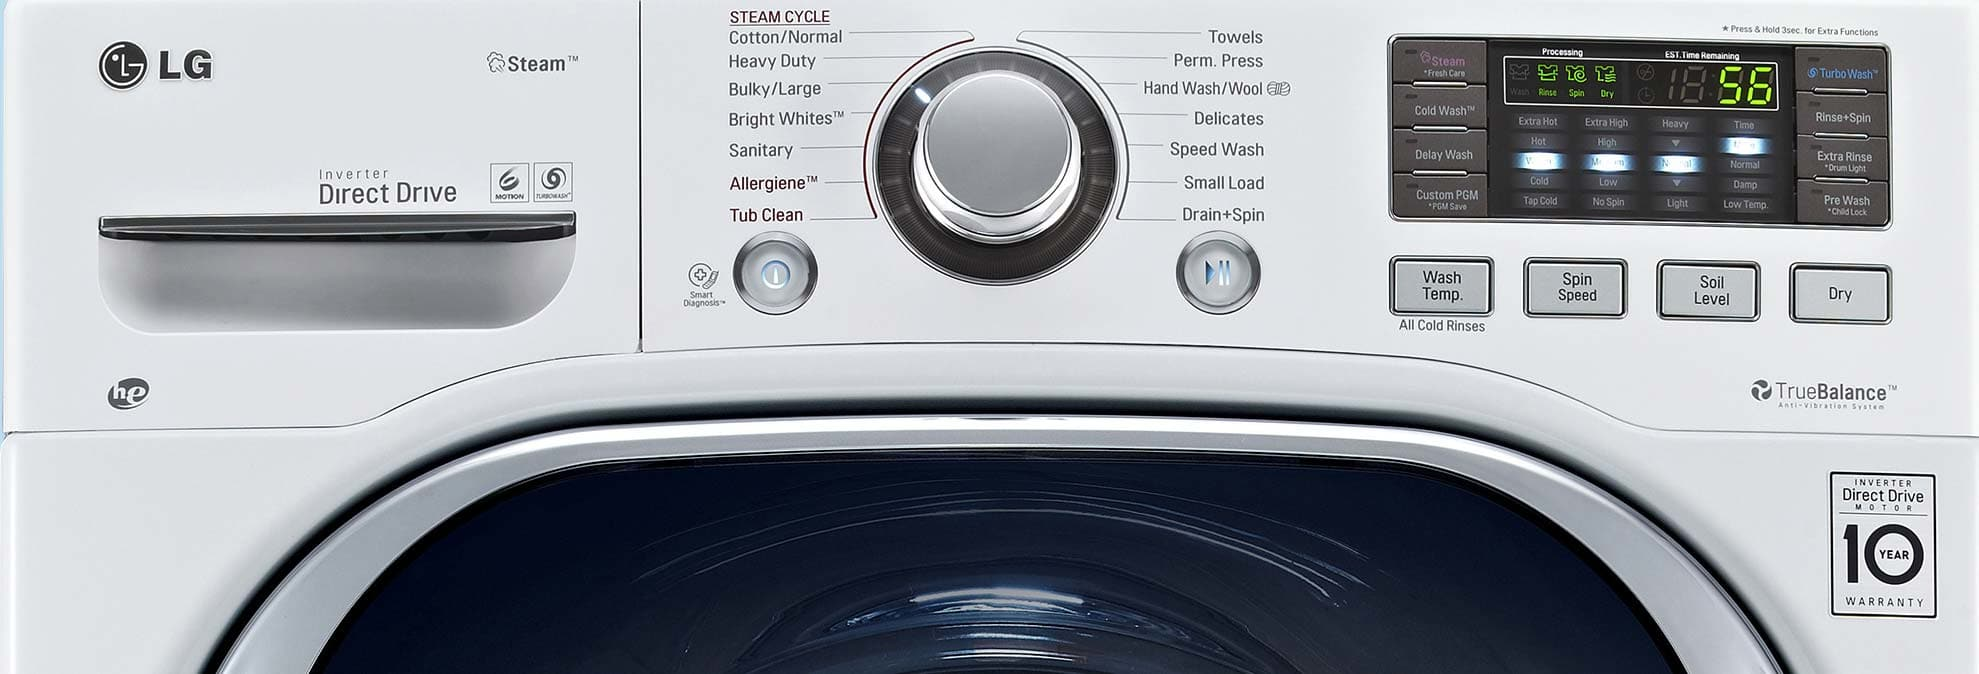 Sears Washer And Dryer Canada All In One Washer Dryer Review Consumer Reports